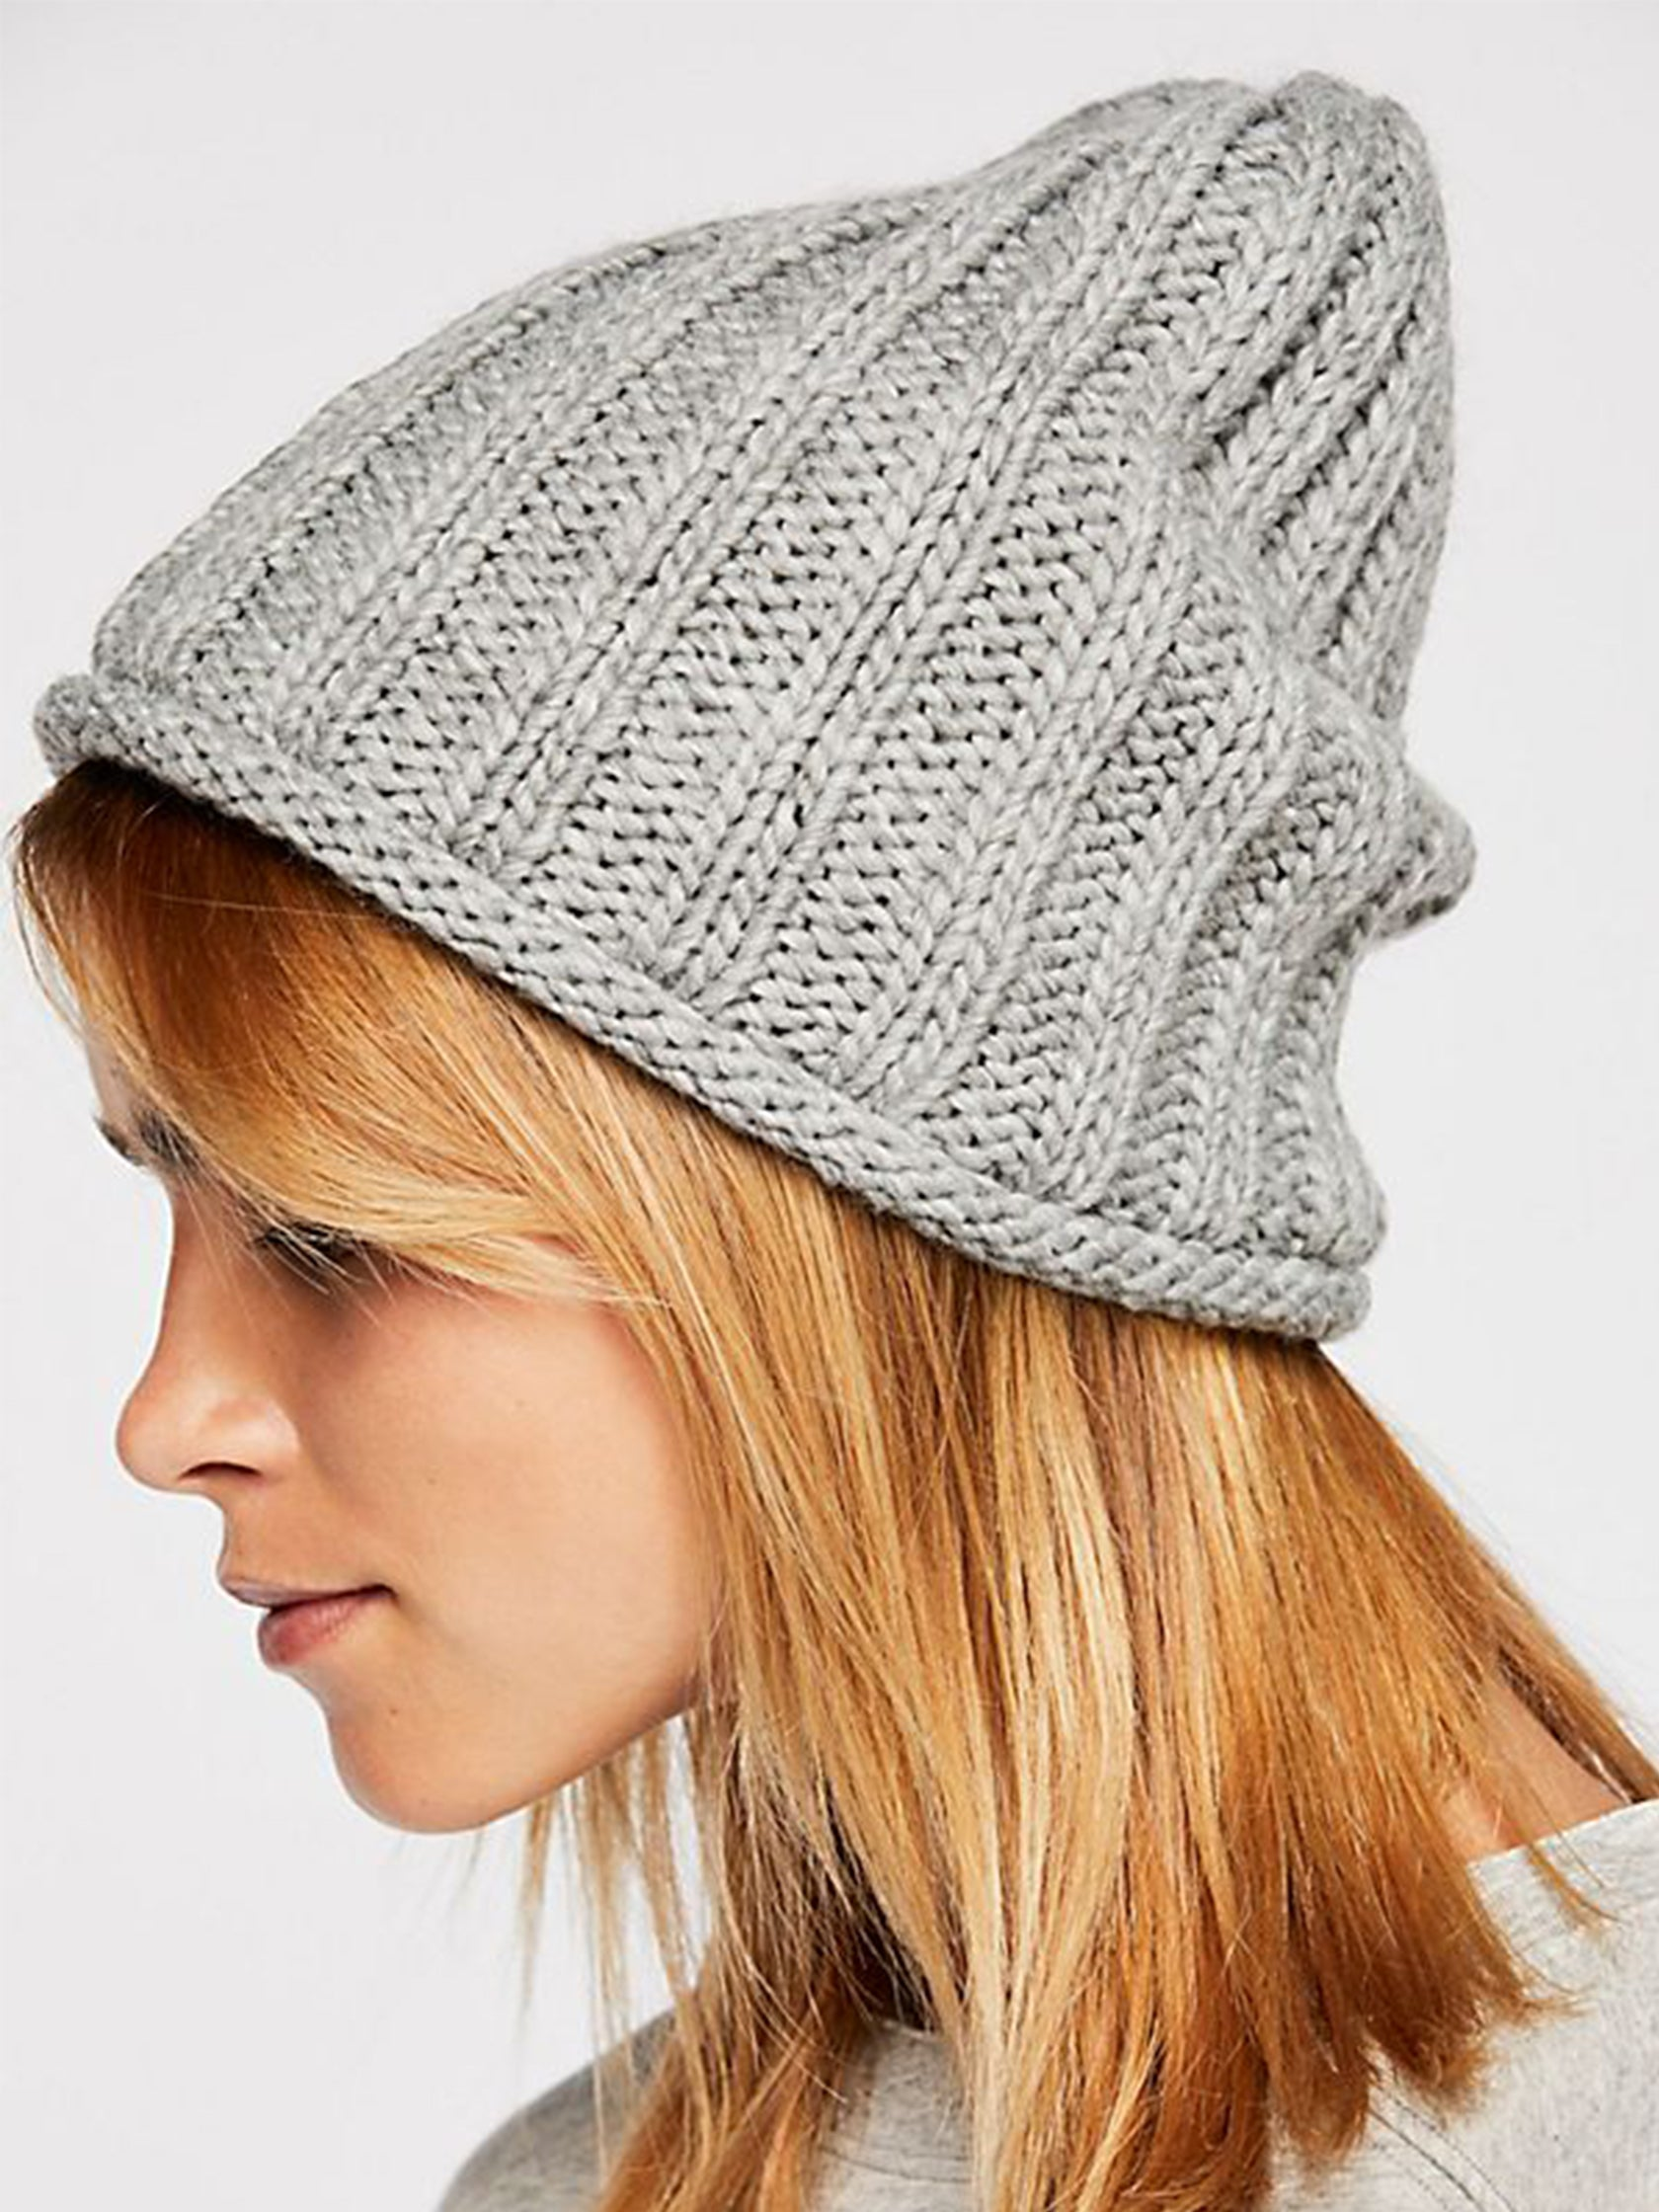 37b9115b46cadb Woman wearing a hat rental from Free People called Rory Rib Knit Beanie